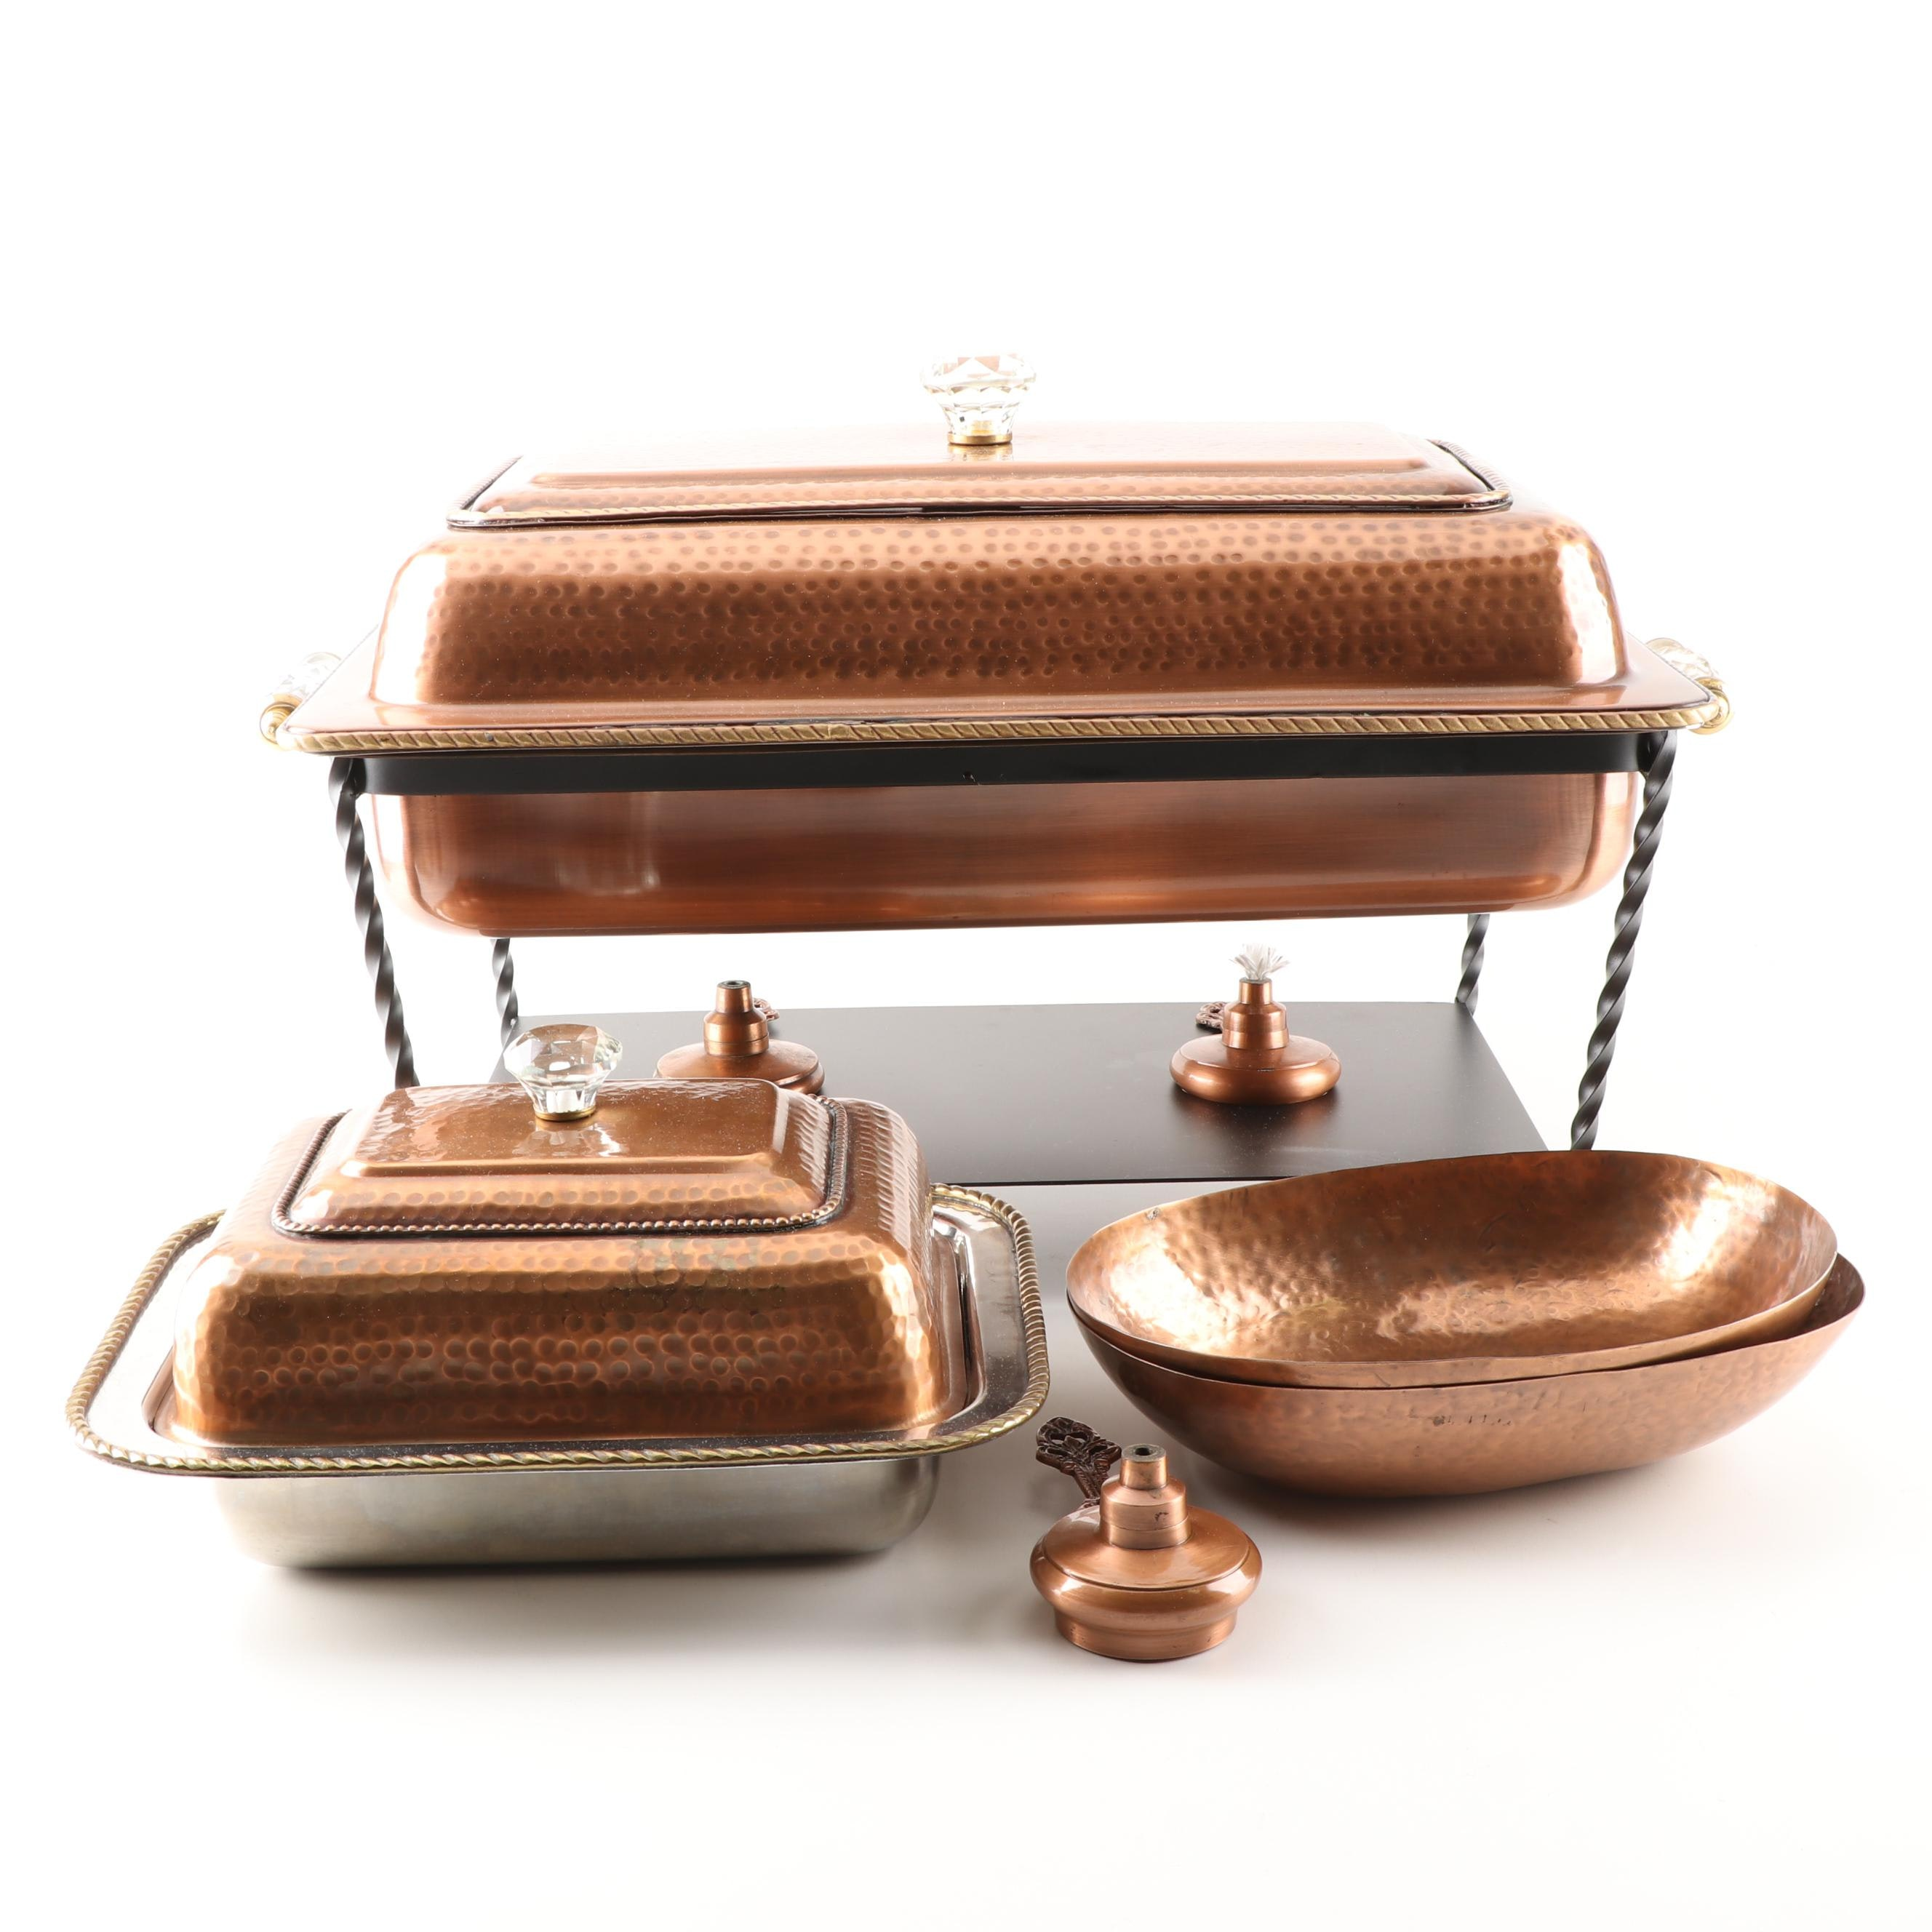 Grouping of Copper Tone Chafing Dishes and Serveware, Contemporary